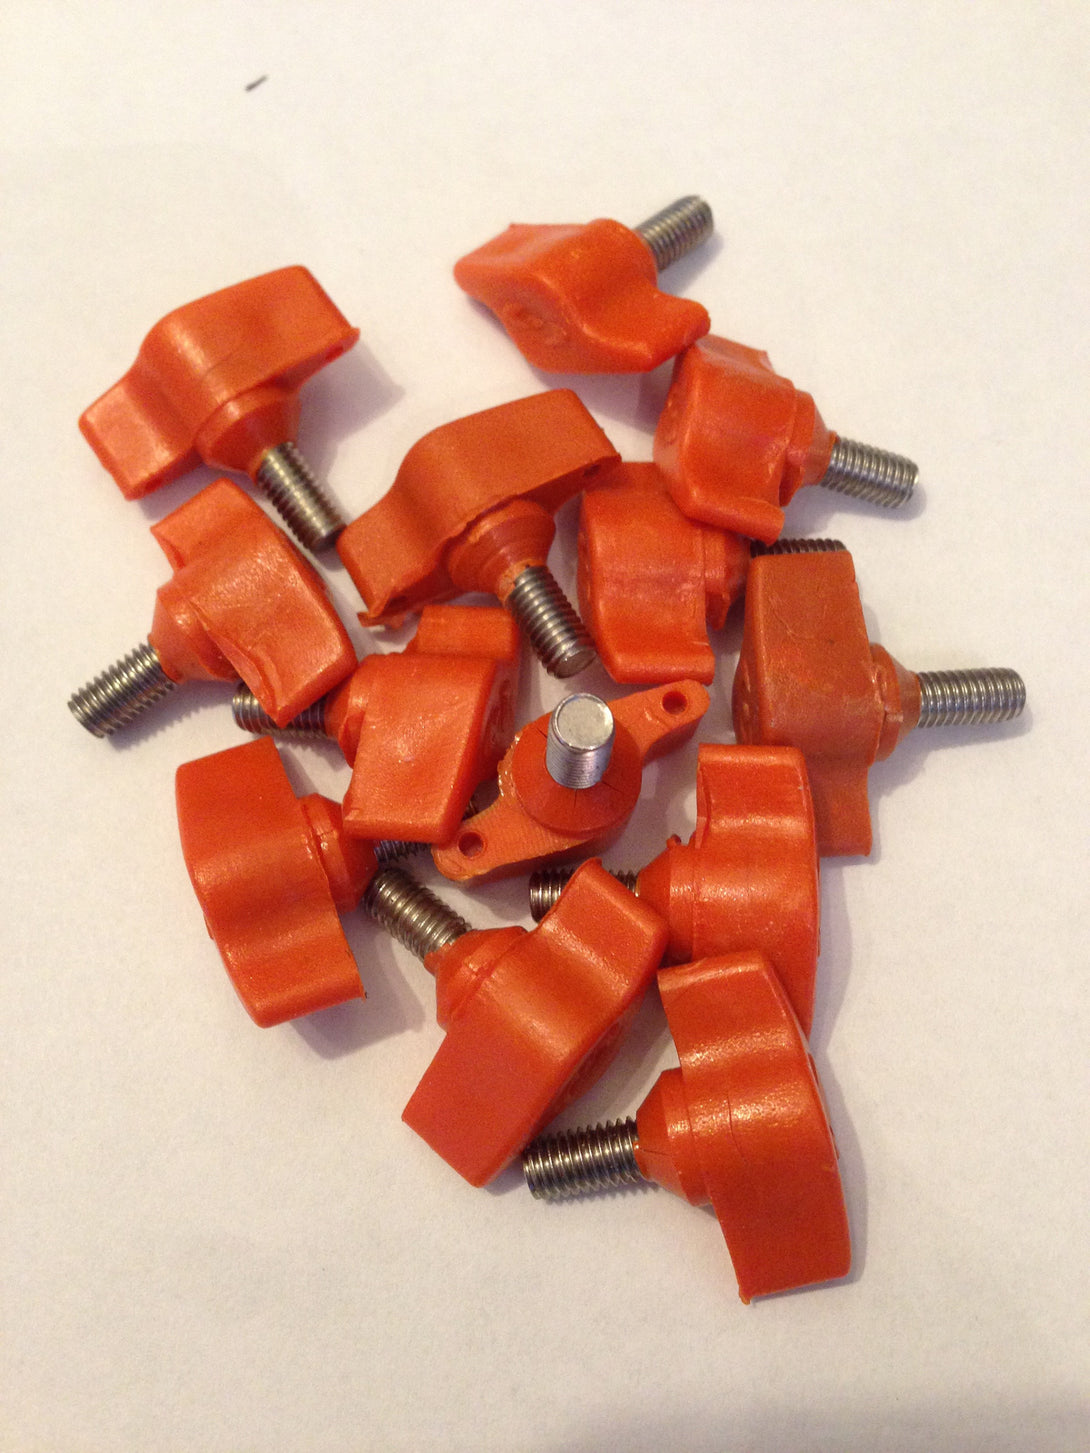 5mm Bolts